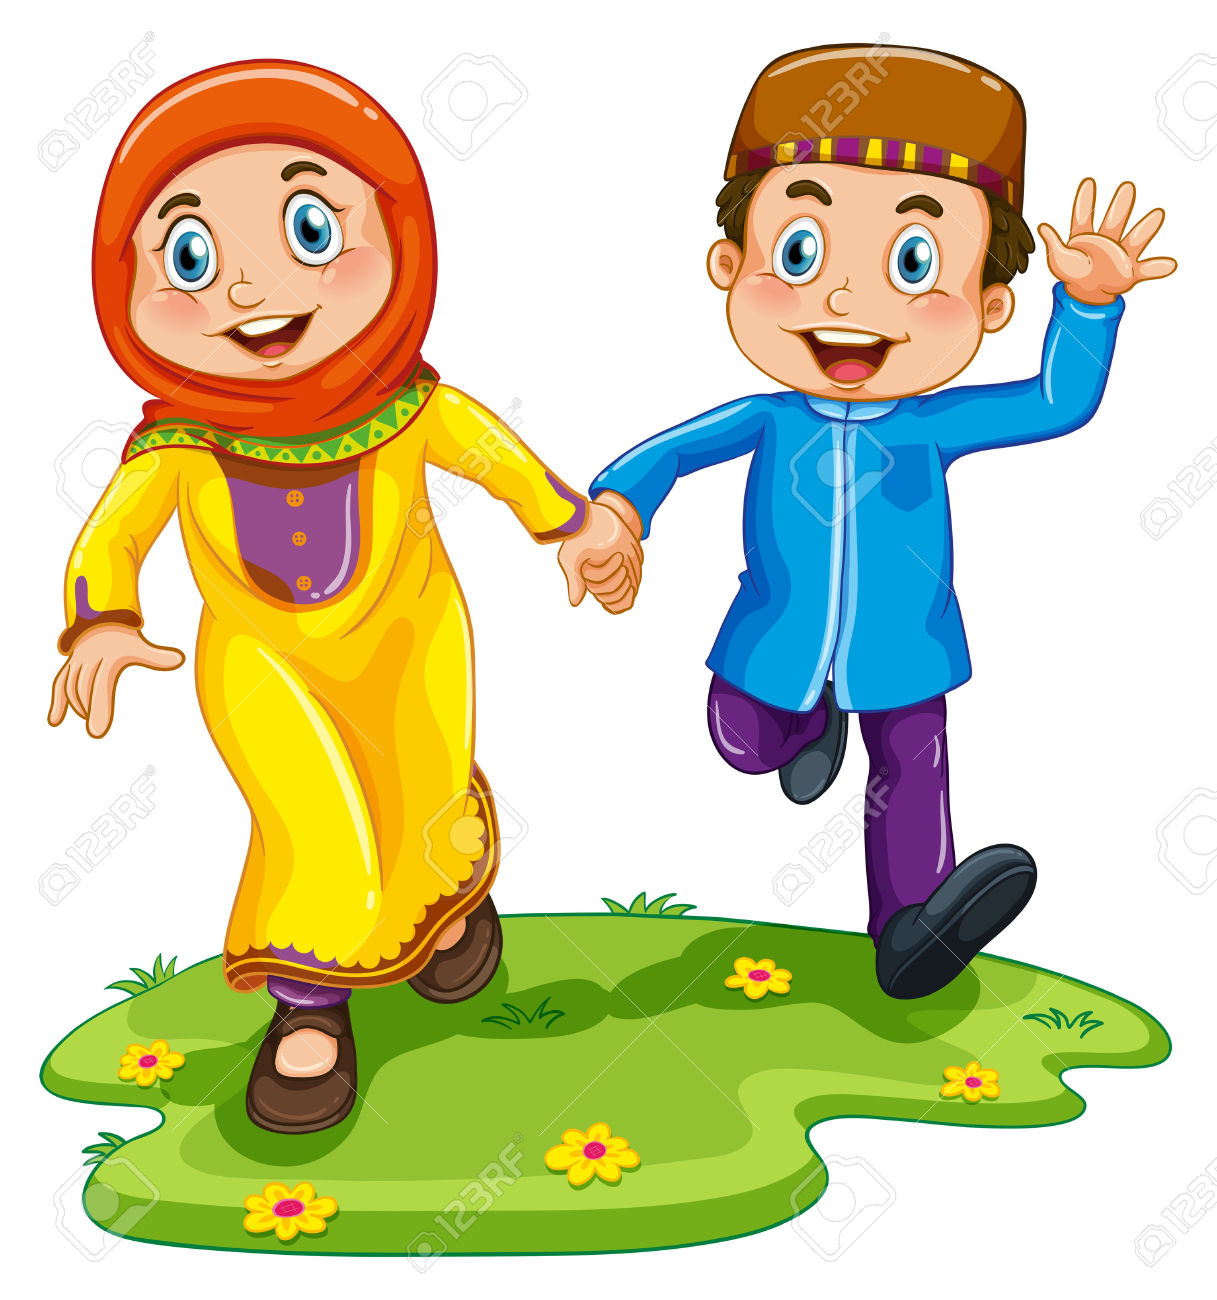 Muslim Boy And Girl Holding Hands Royalty Free Cliparts, Vectors.